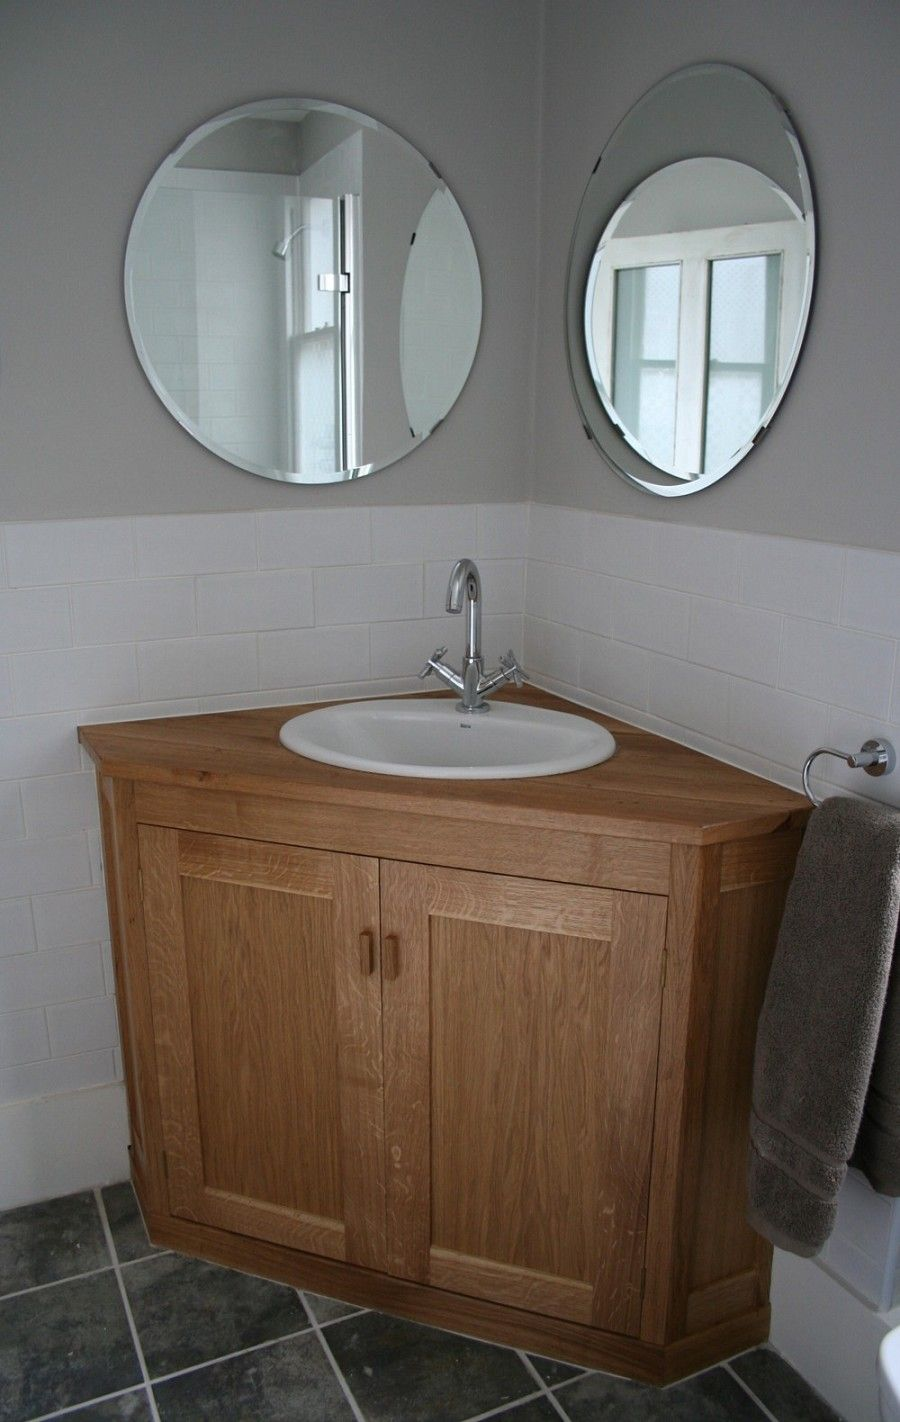 Corner Oak Wooden Vanity Furniture With Modern White Round Sink